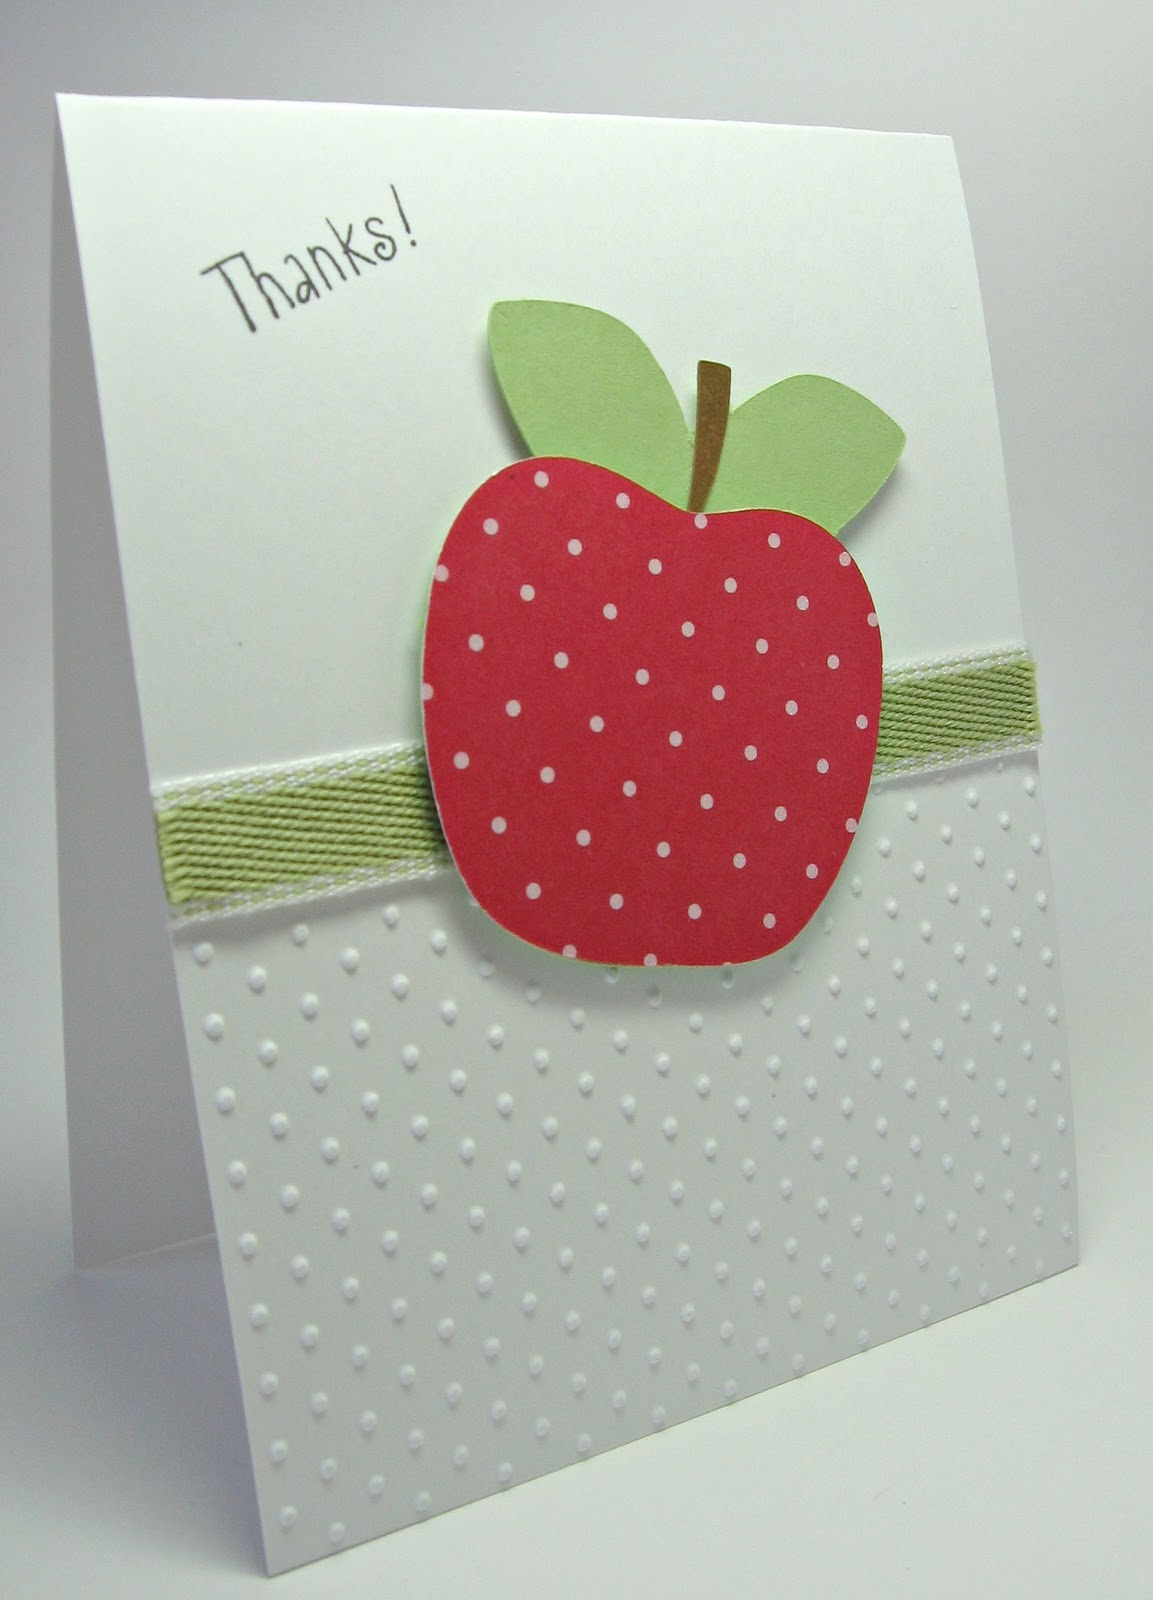 stamping up north with laurie: Cricut Thank you card